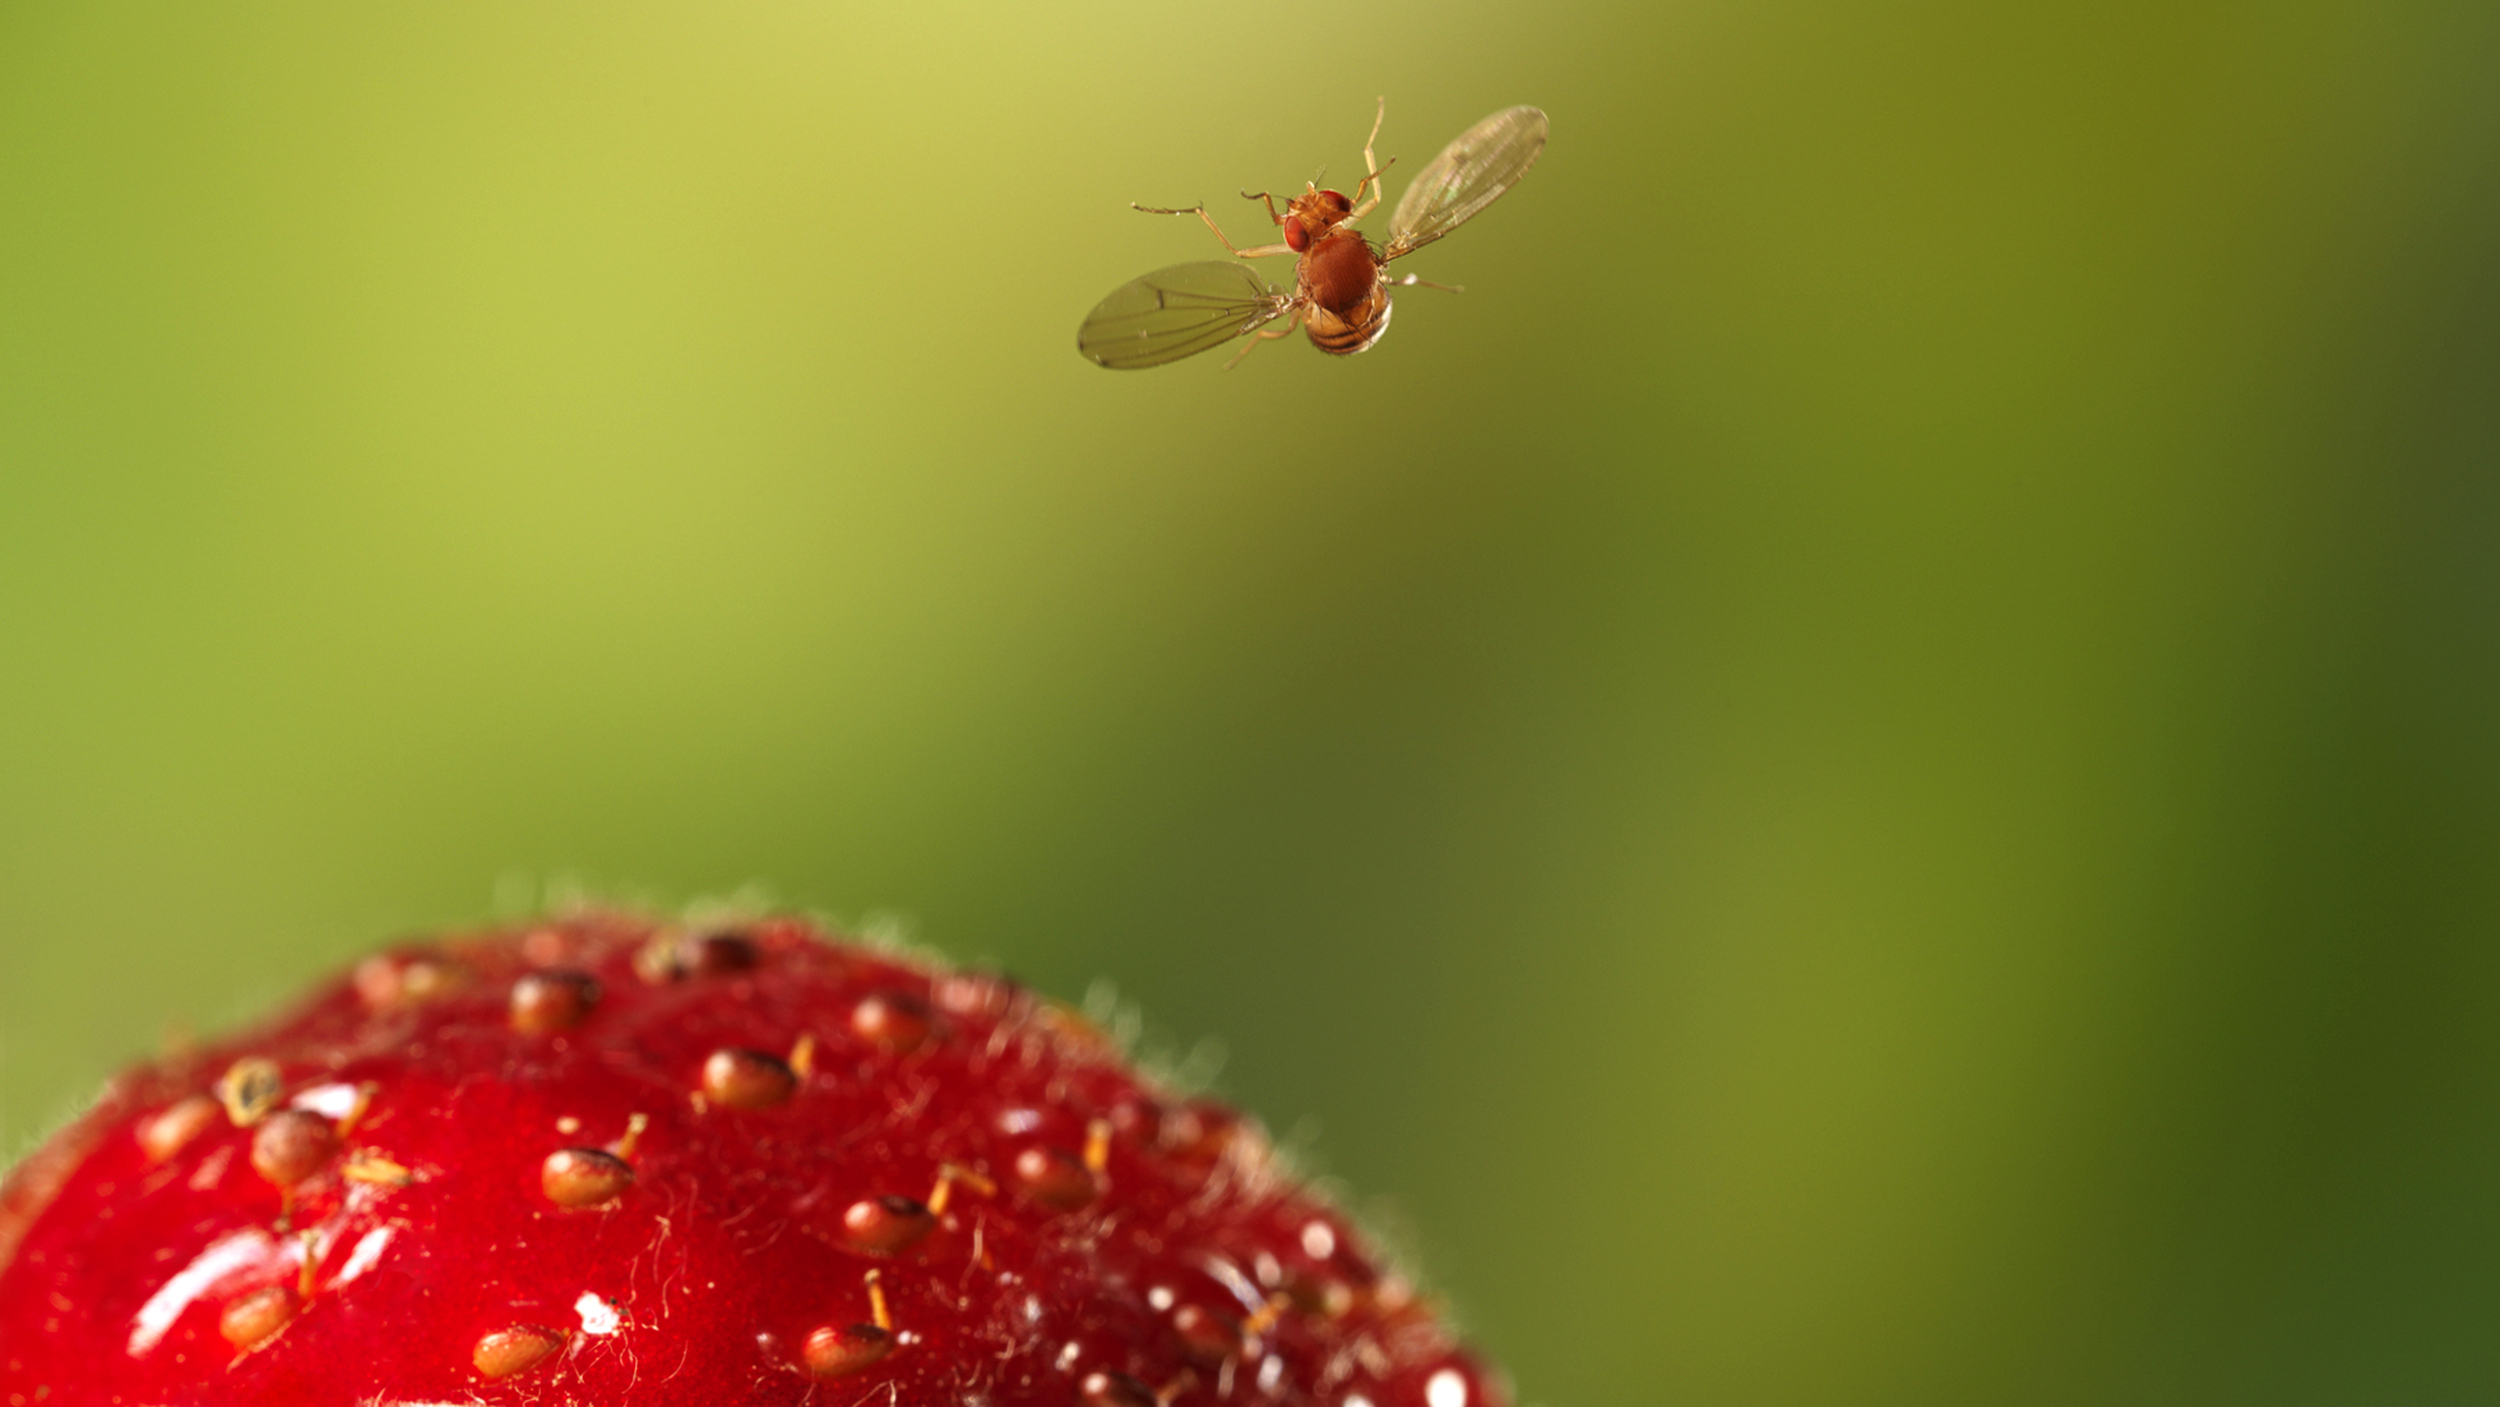 How to easily get rid of fruit flies